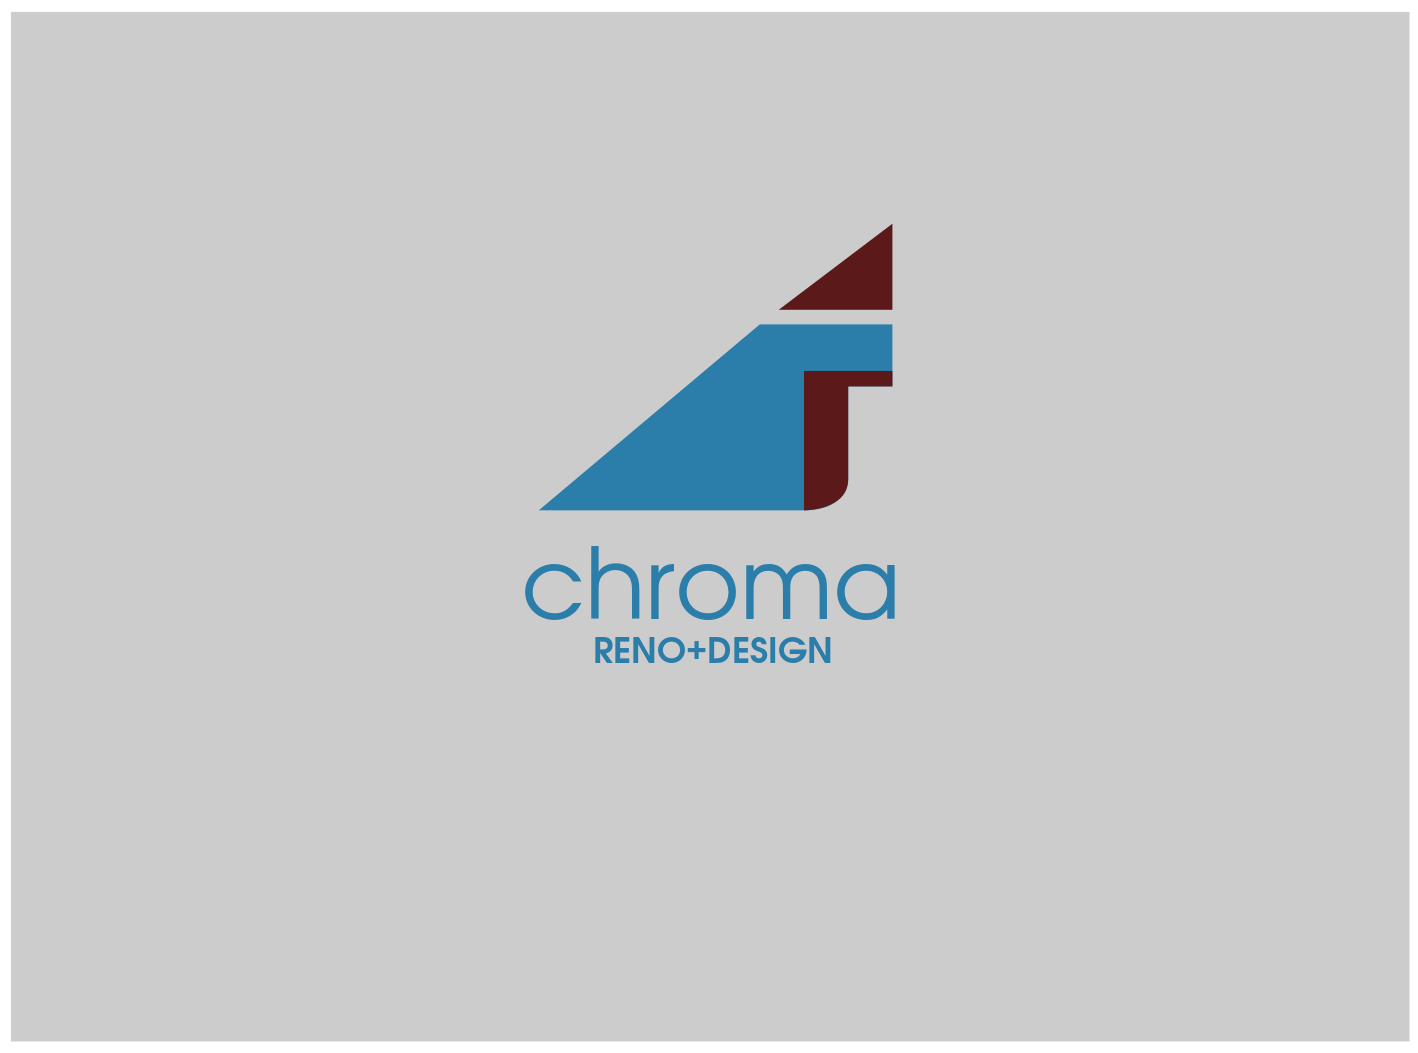 Logo Design by JaroslavProcka - Entry No. 211 in the Logo Design Contest Inspiring Logo Design for Chroma Reno+Design.